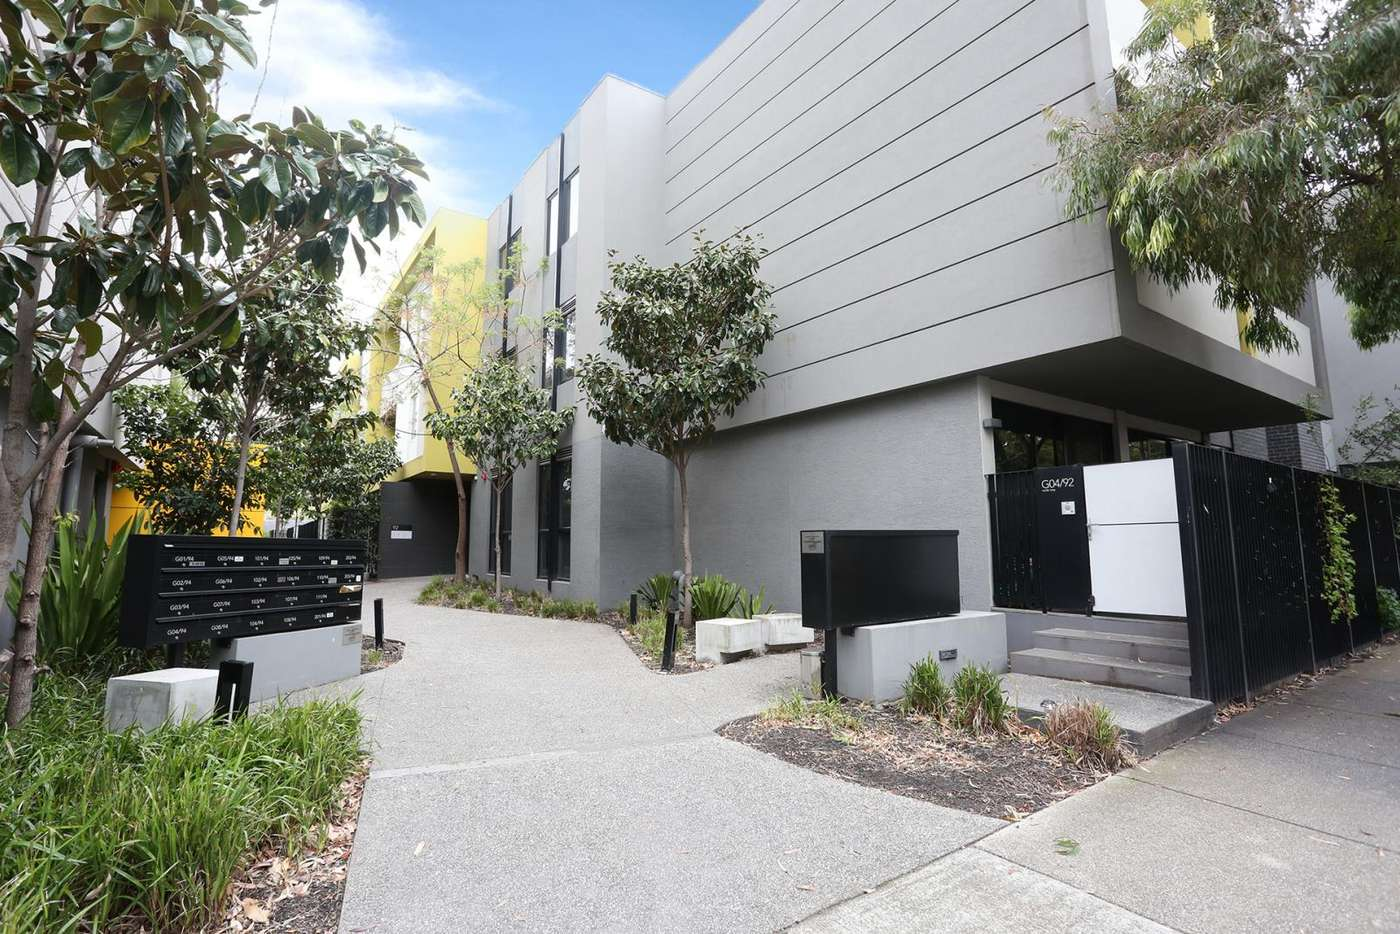 Main view of Homely apartment listing, 204/92 Cade Way, Parkville VIC 3052